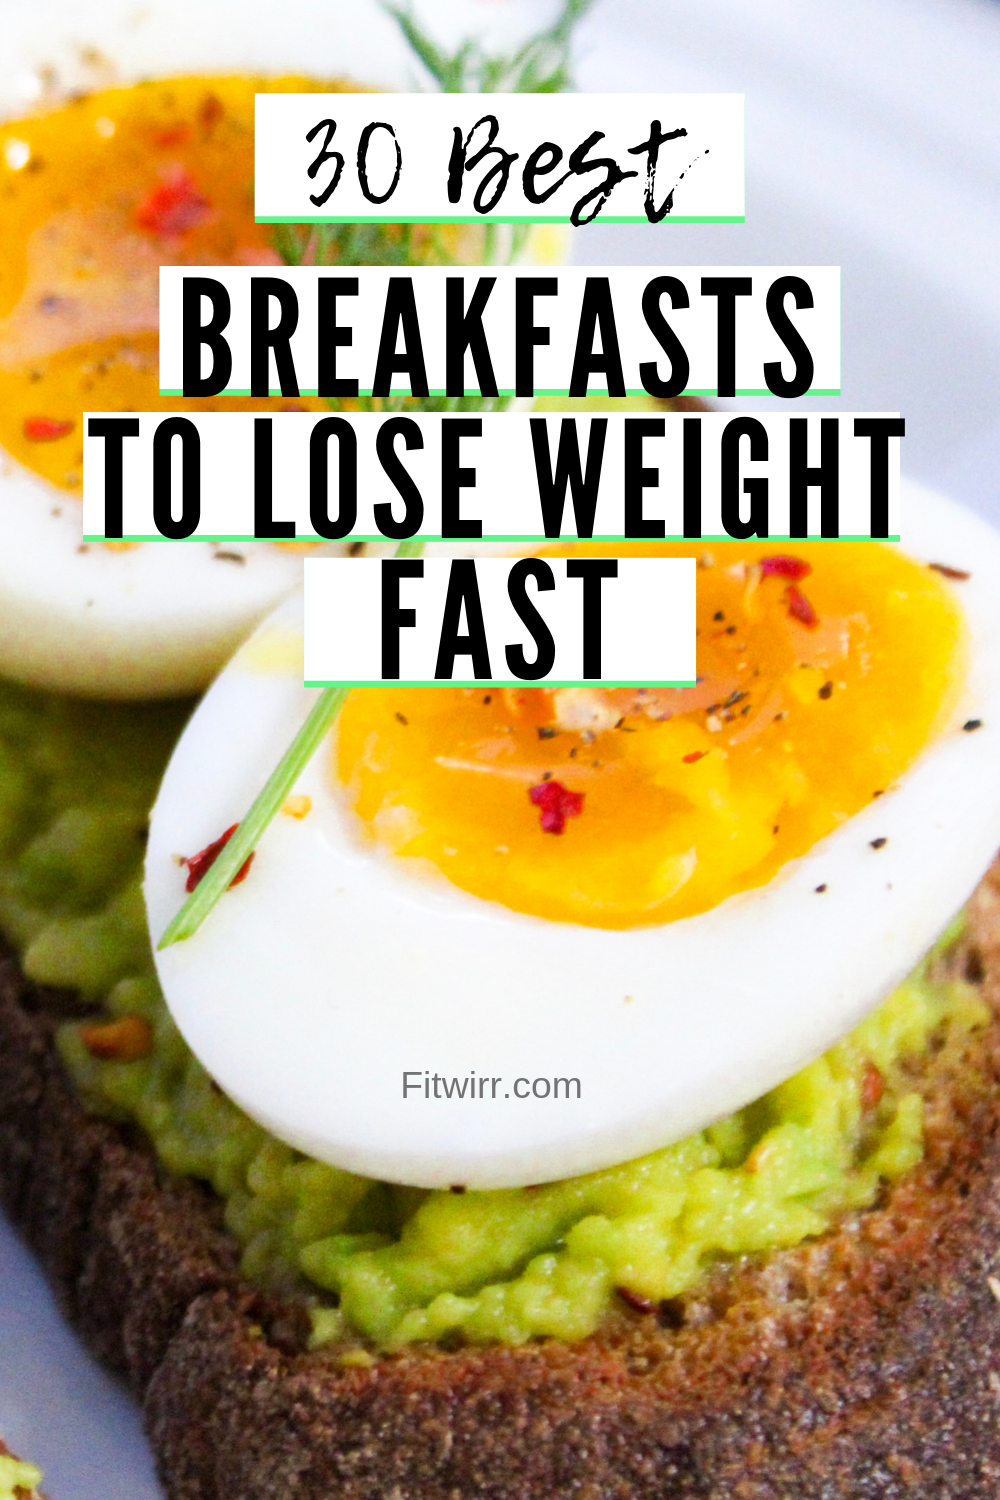 30 Fast, Easy Healthy Breakfast Ideas for Weight Loss - Fitwirr